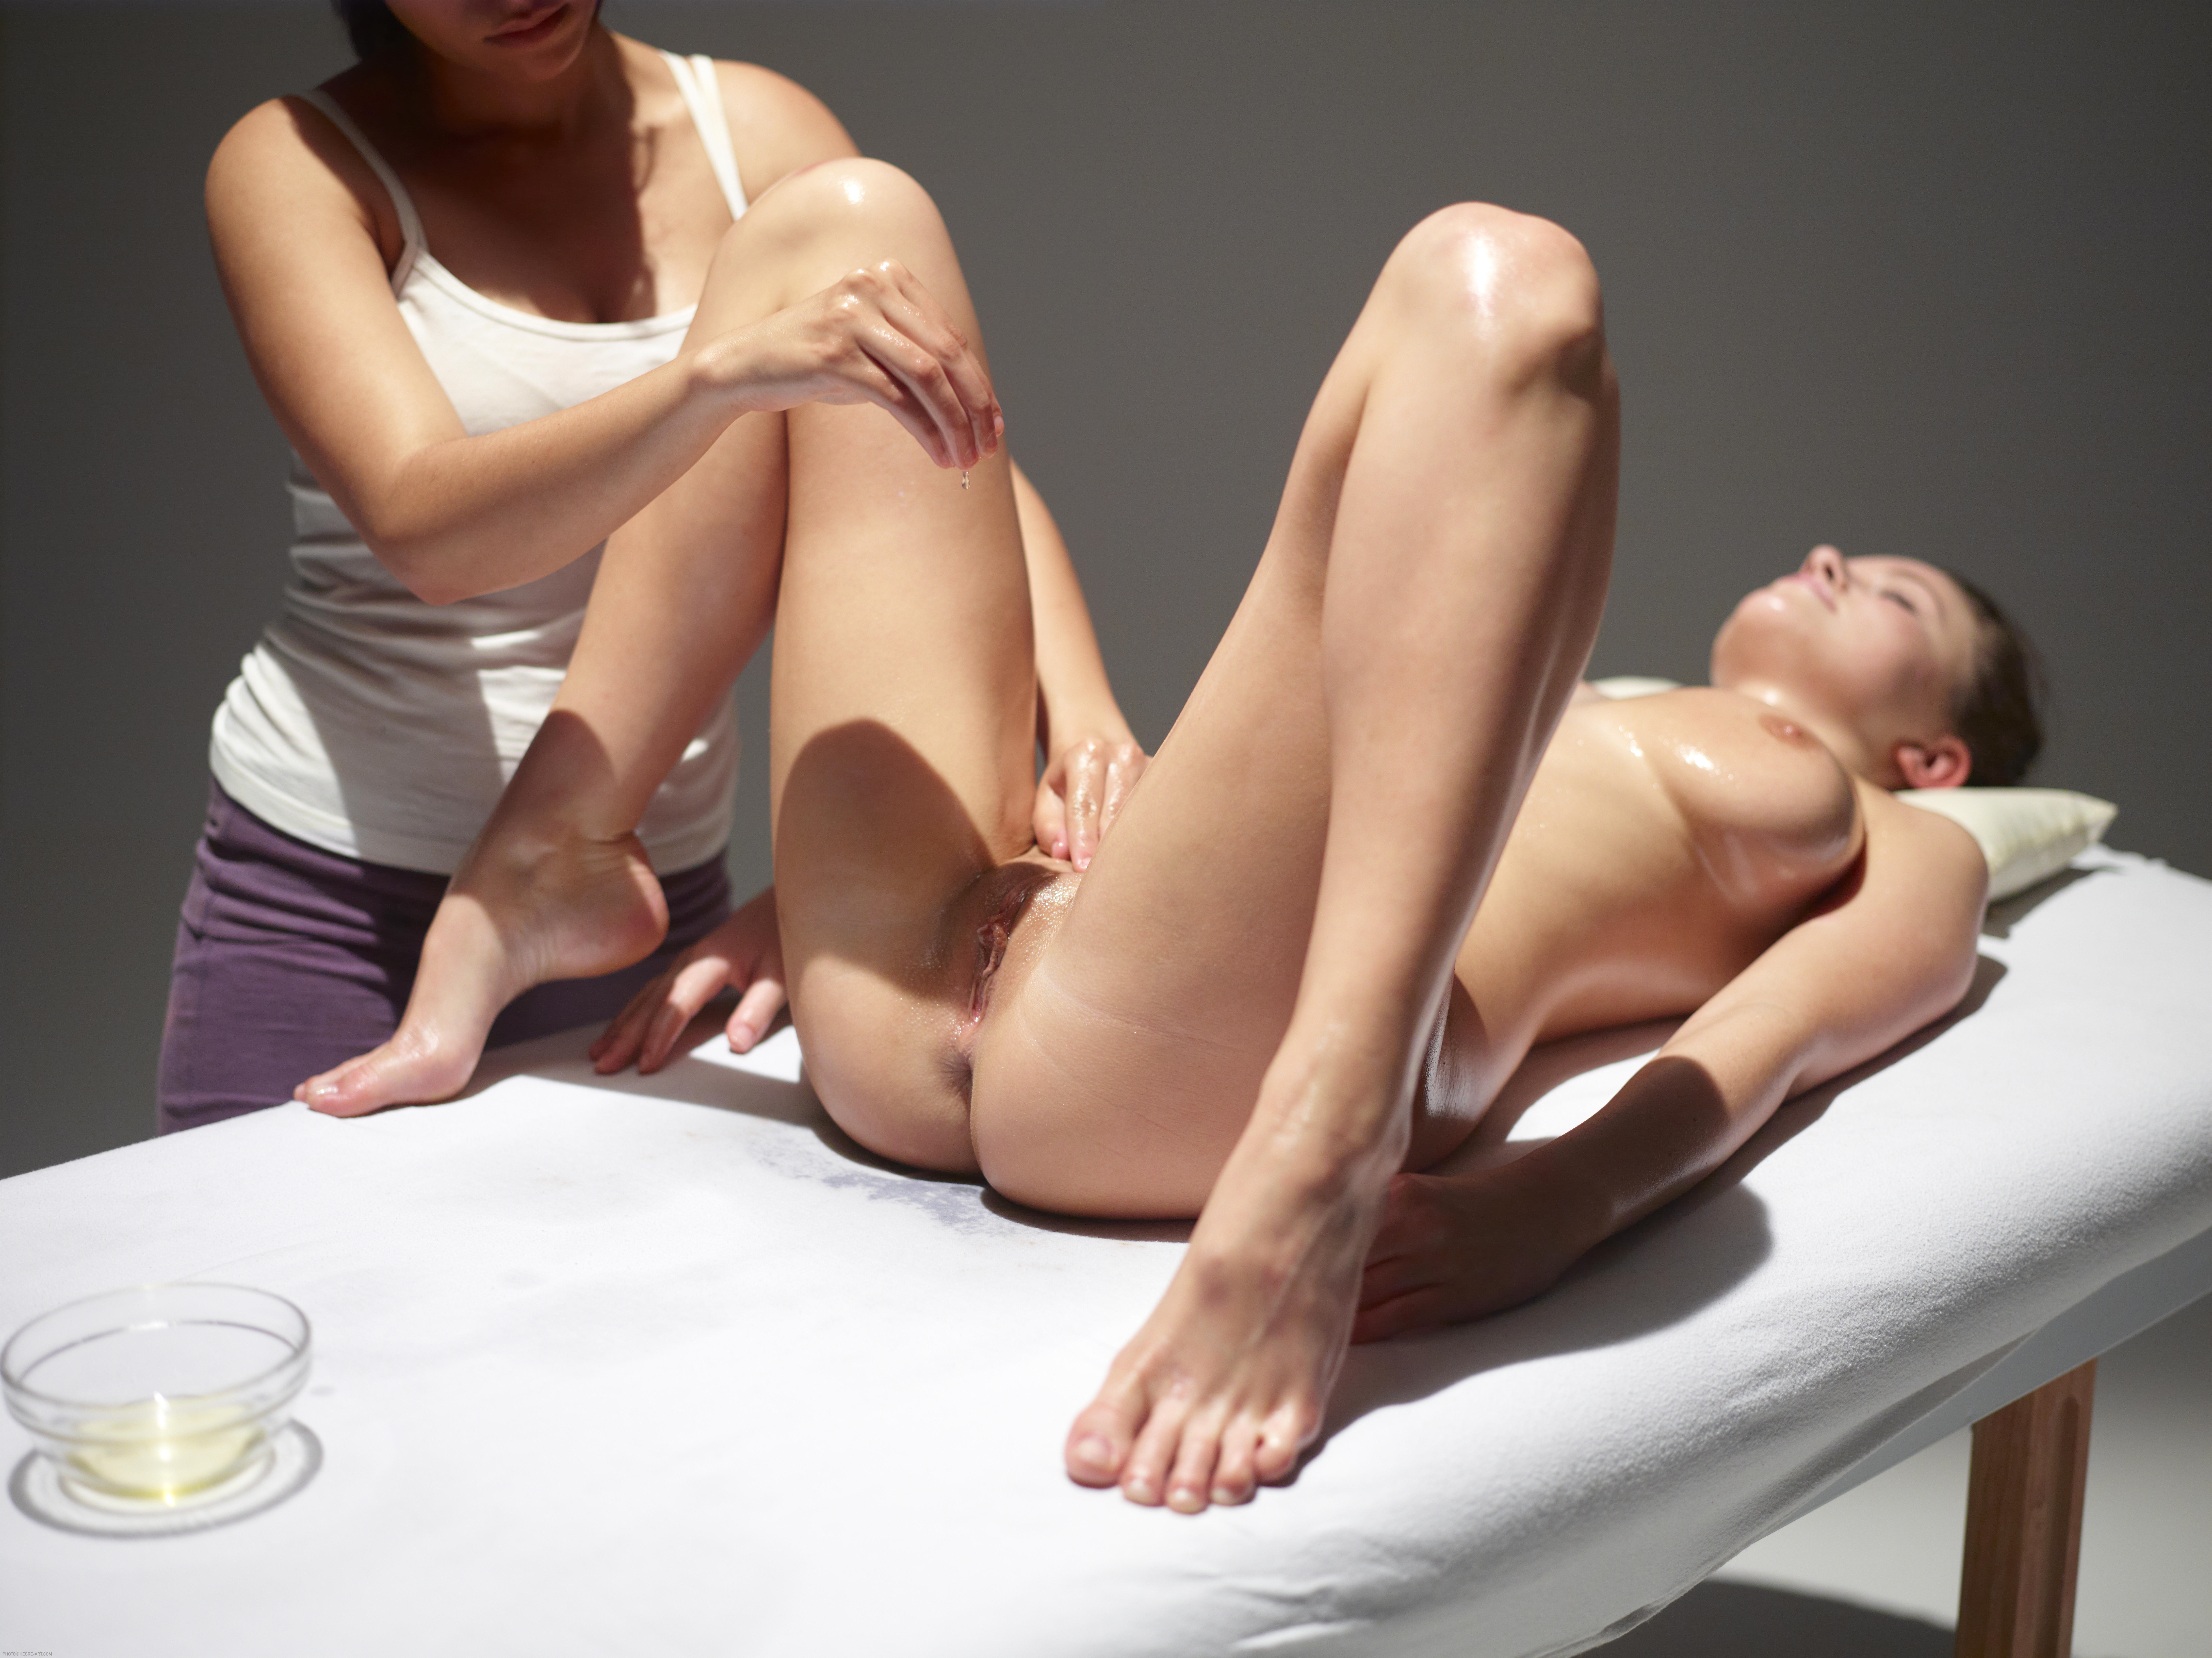 FULL TANTRA MASSAGE EROTISK KONTAKT